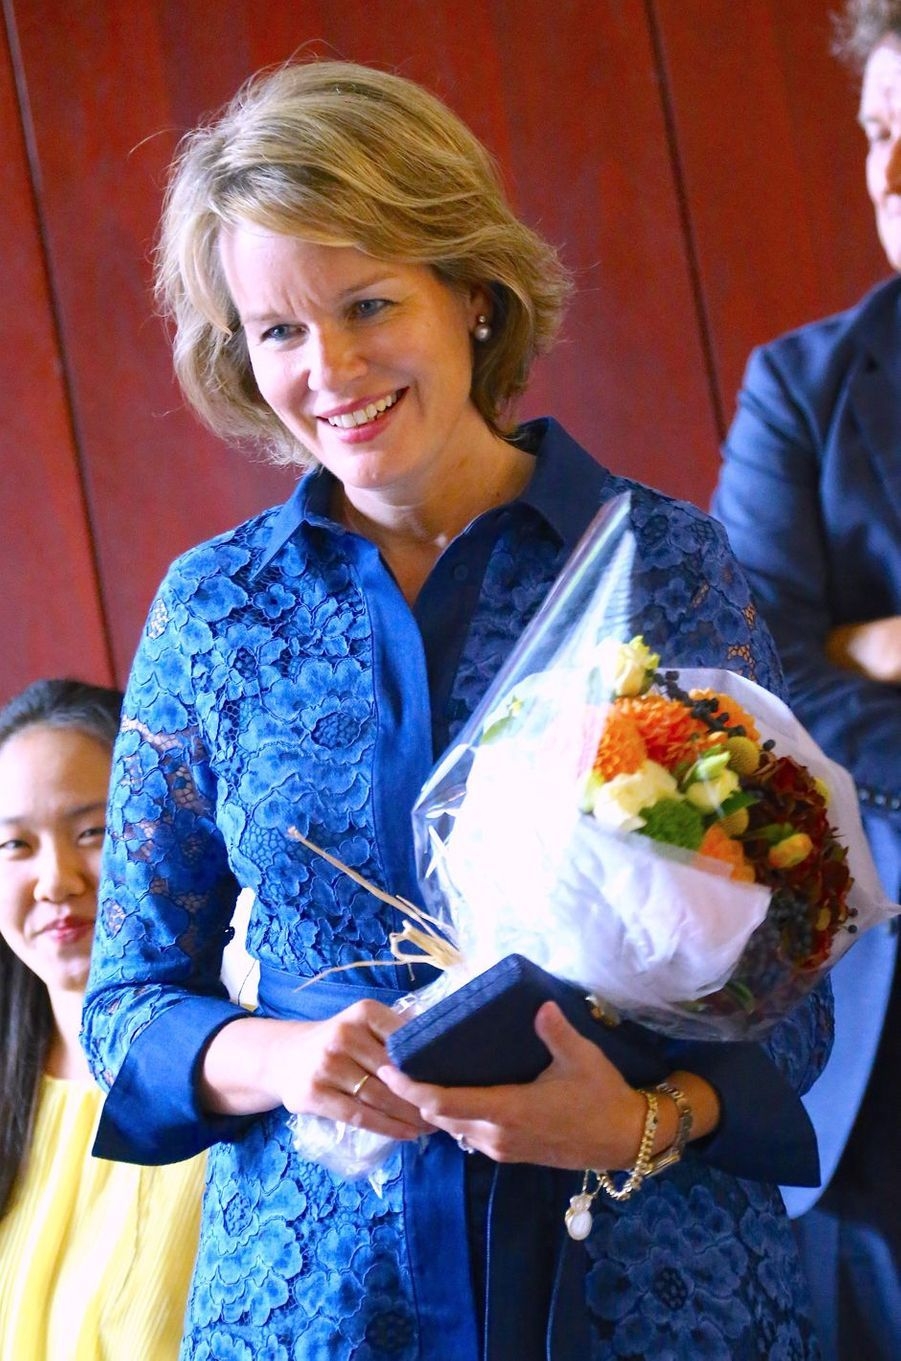 La reine Mathilde de Belgique, le 23 septembre 2019 à New York